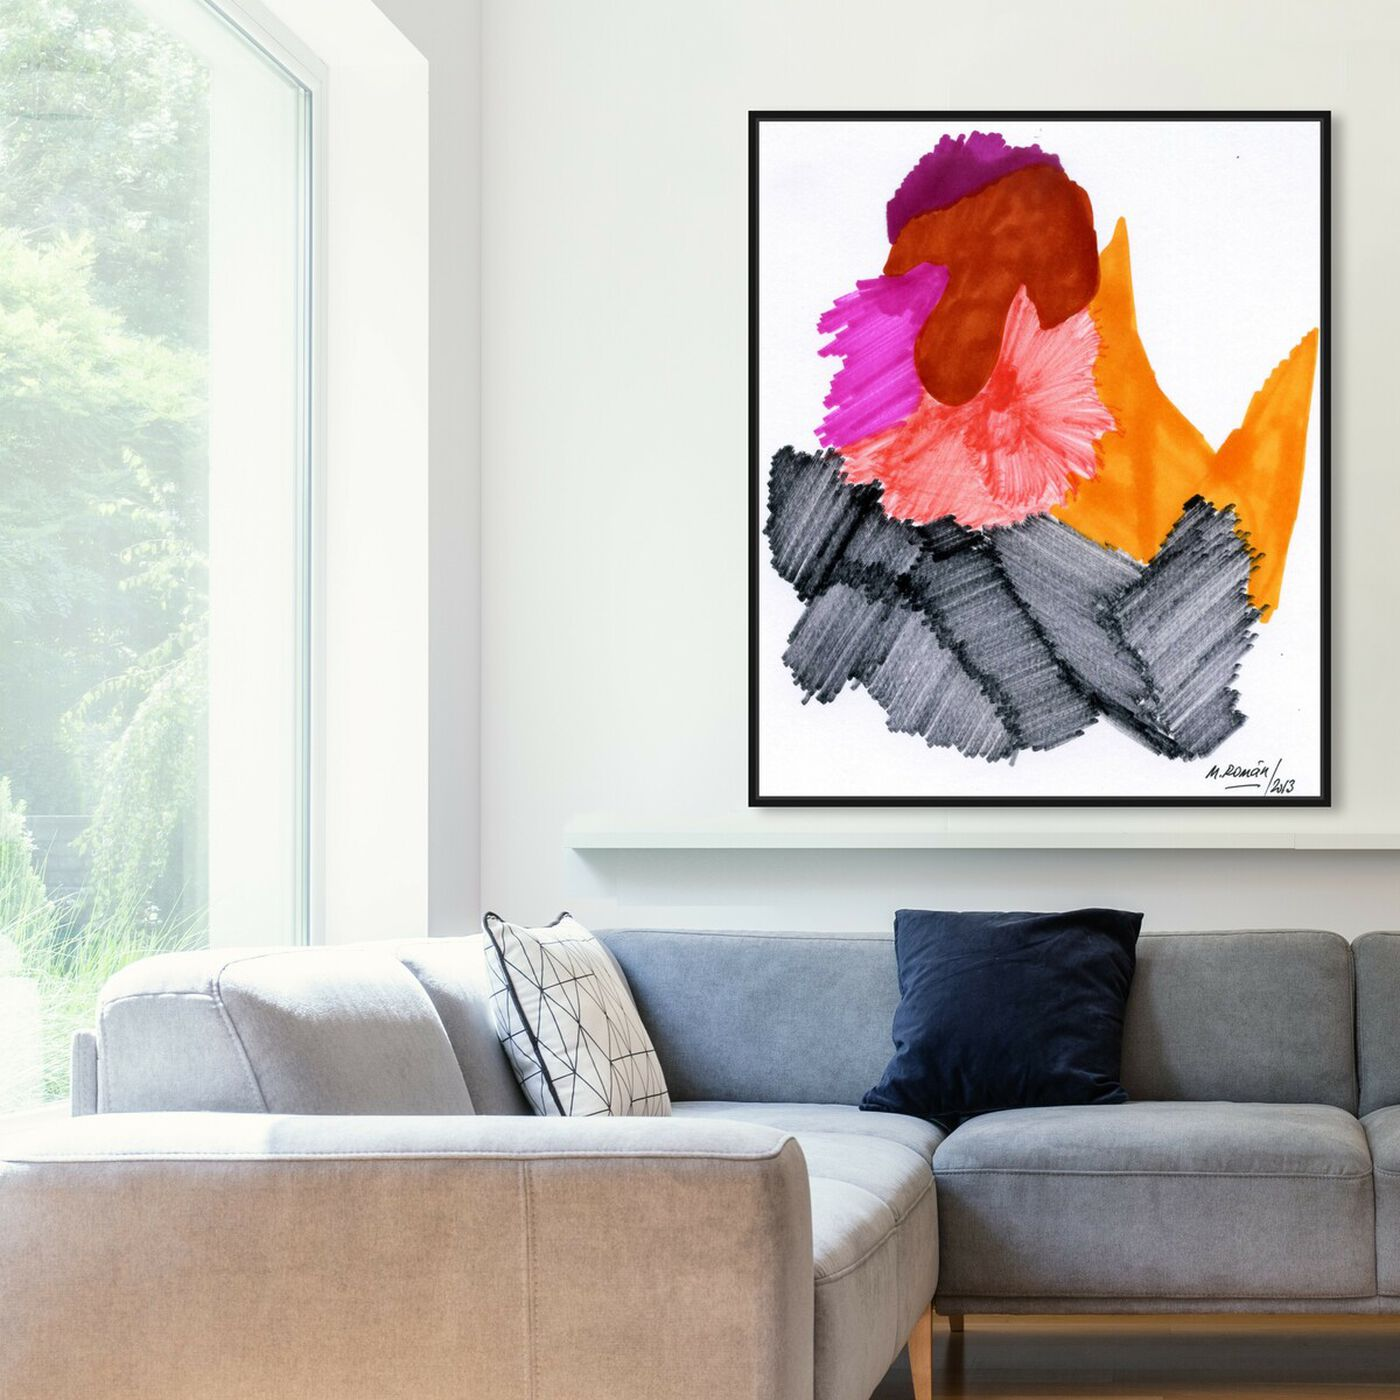 Hanging view of Passion Flare featuring abstract and paint art.